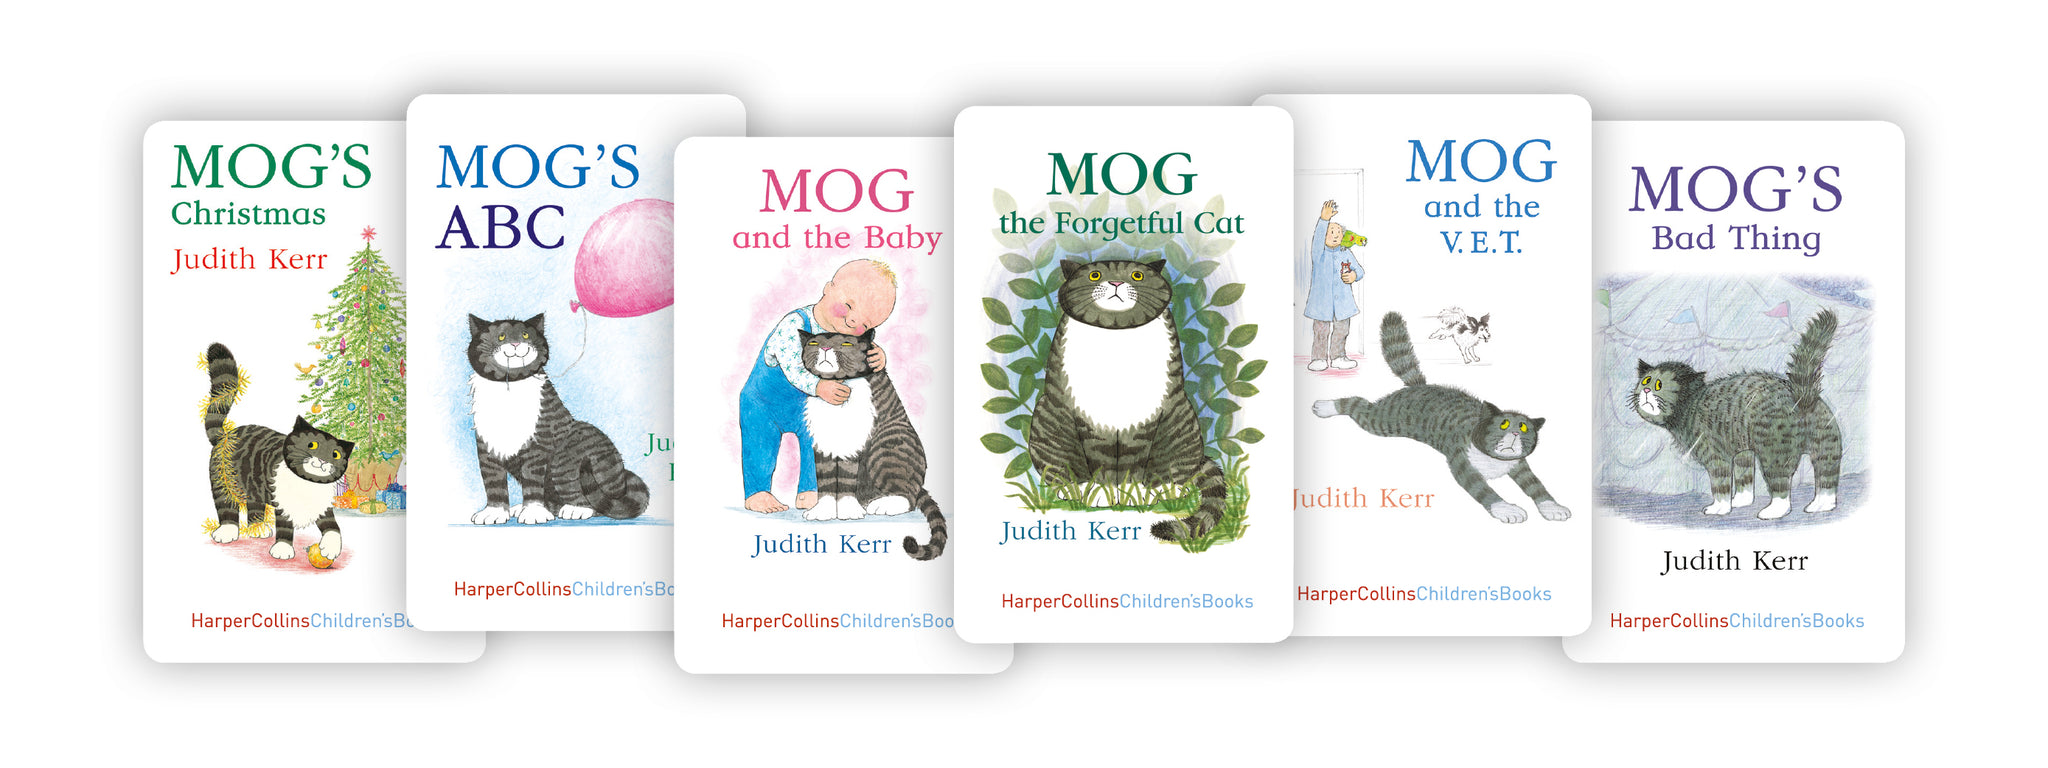 The Mog Collection - Yoto Review